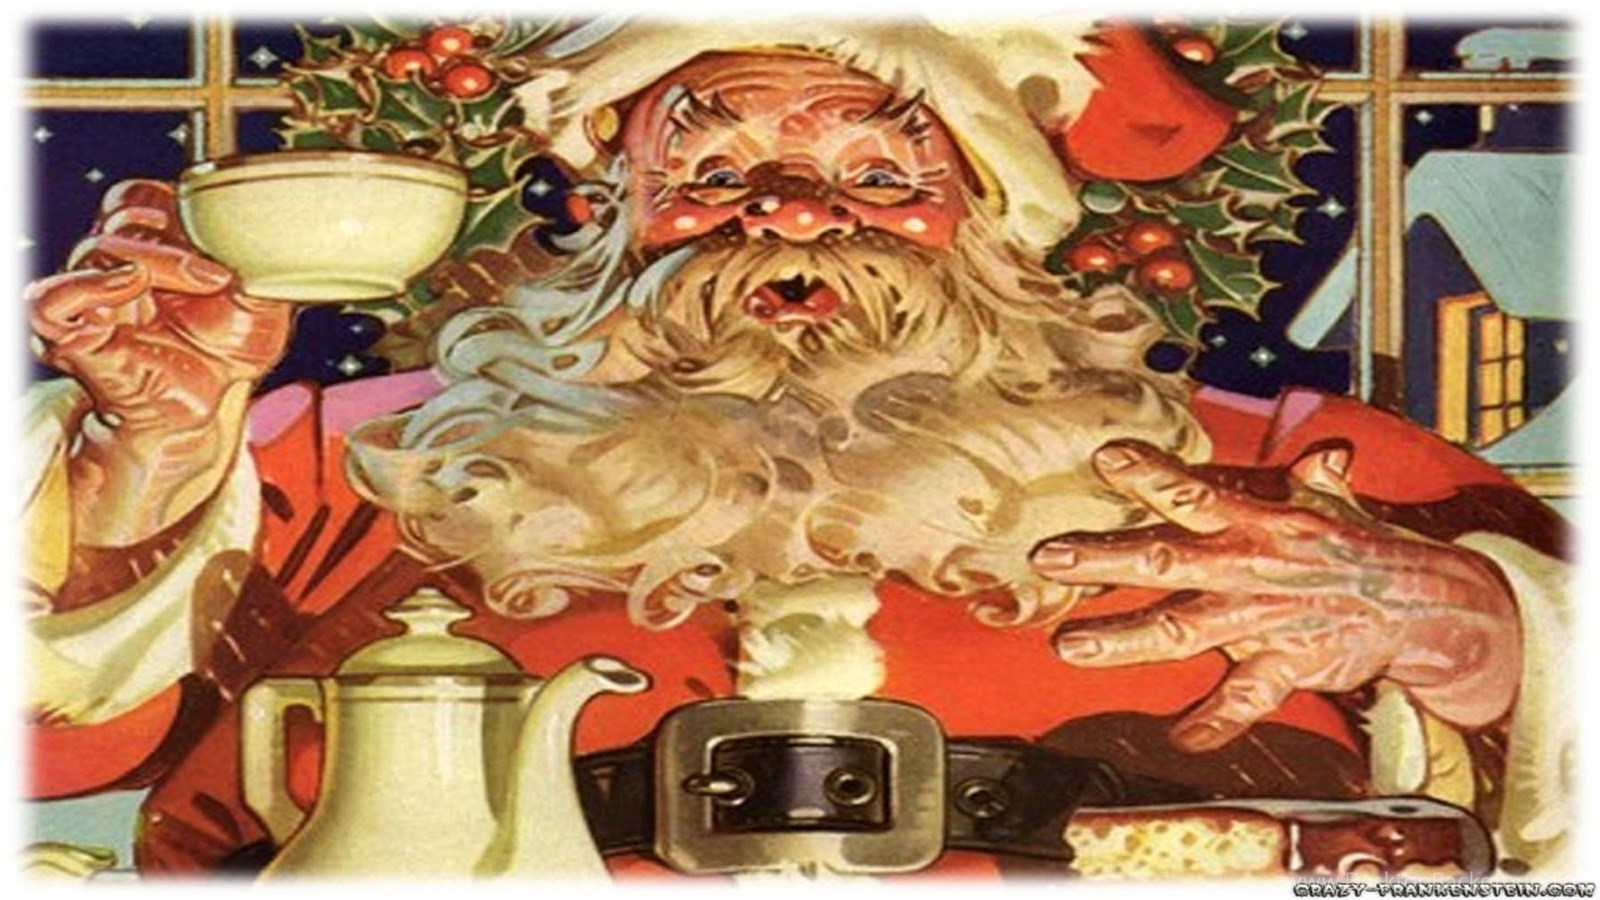 Free Ipod Wallpapers Hd Christmas Santa Claus Wallpapers Old Retro Card Free